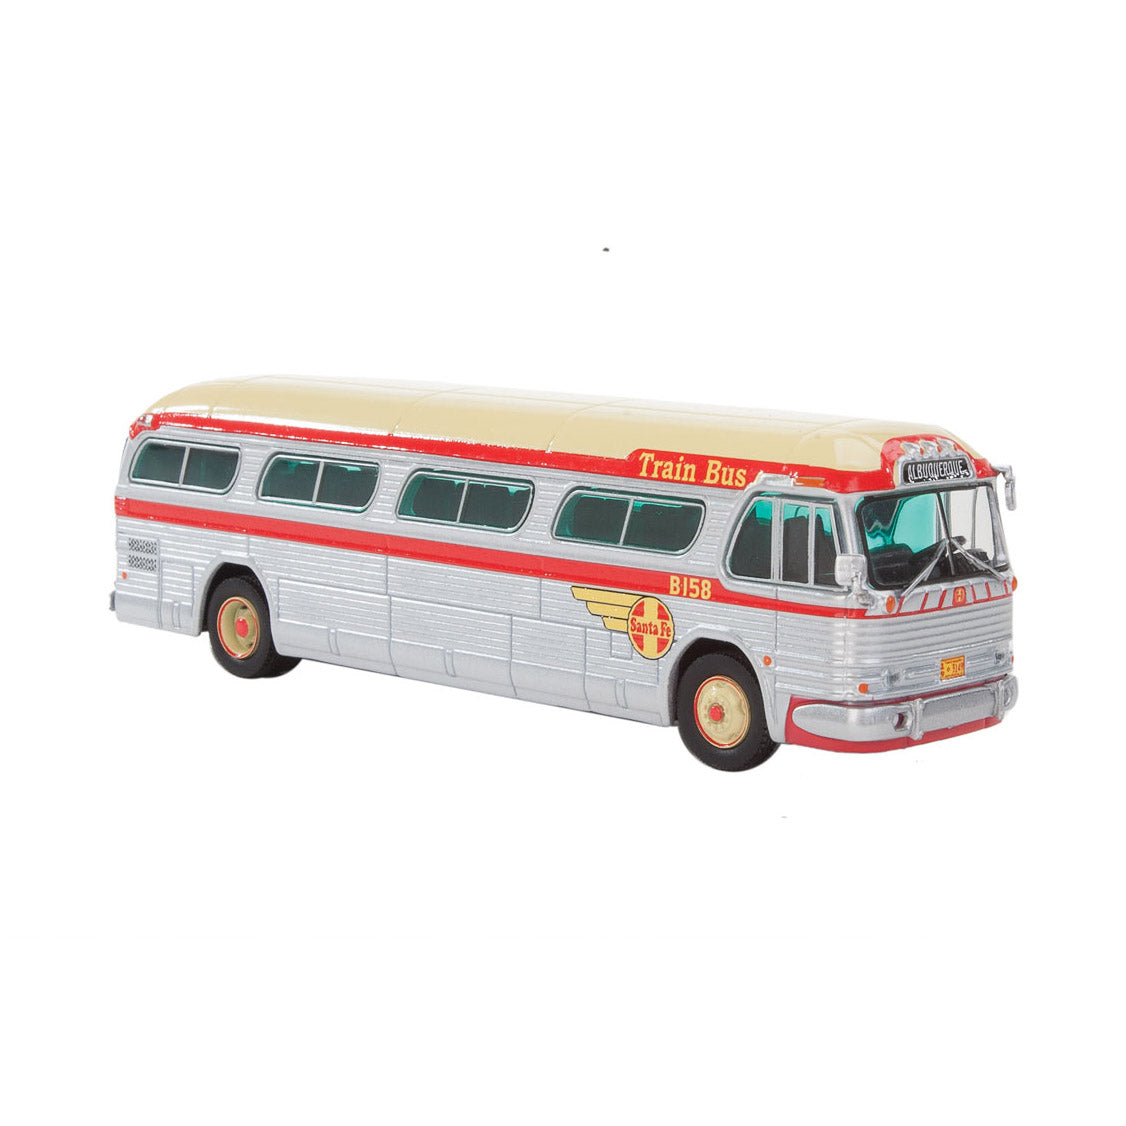 HO Scale: 1958 GM PD4104 Bus - Santa Fe